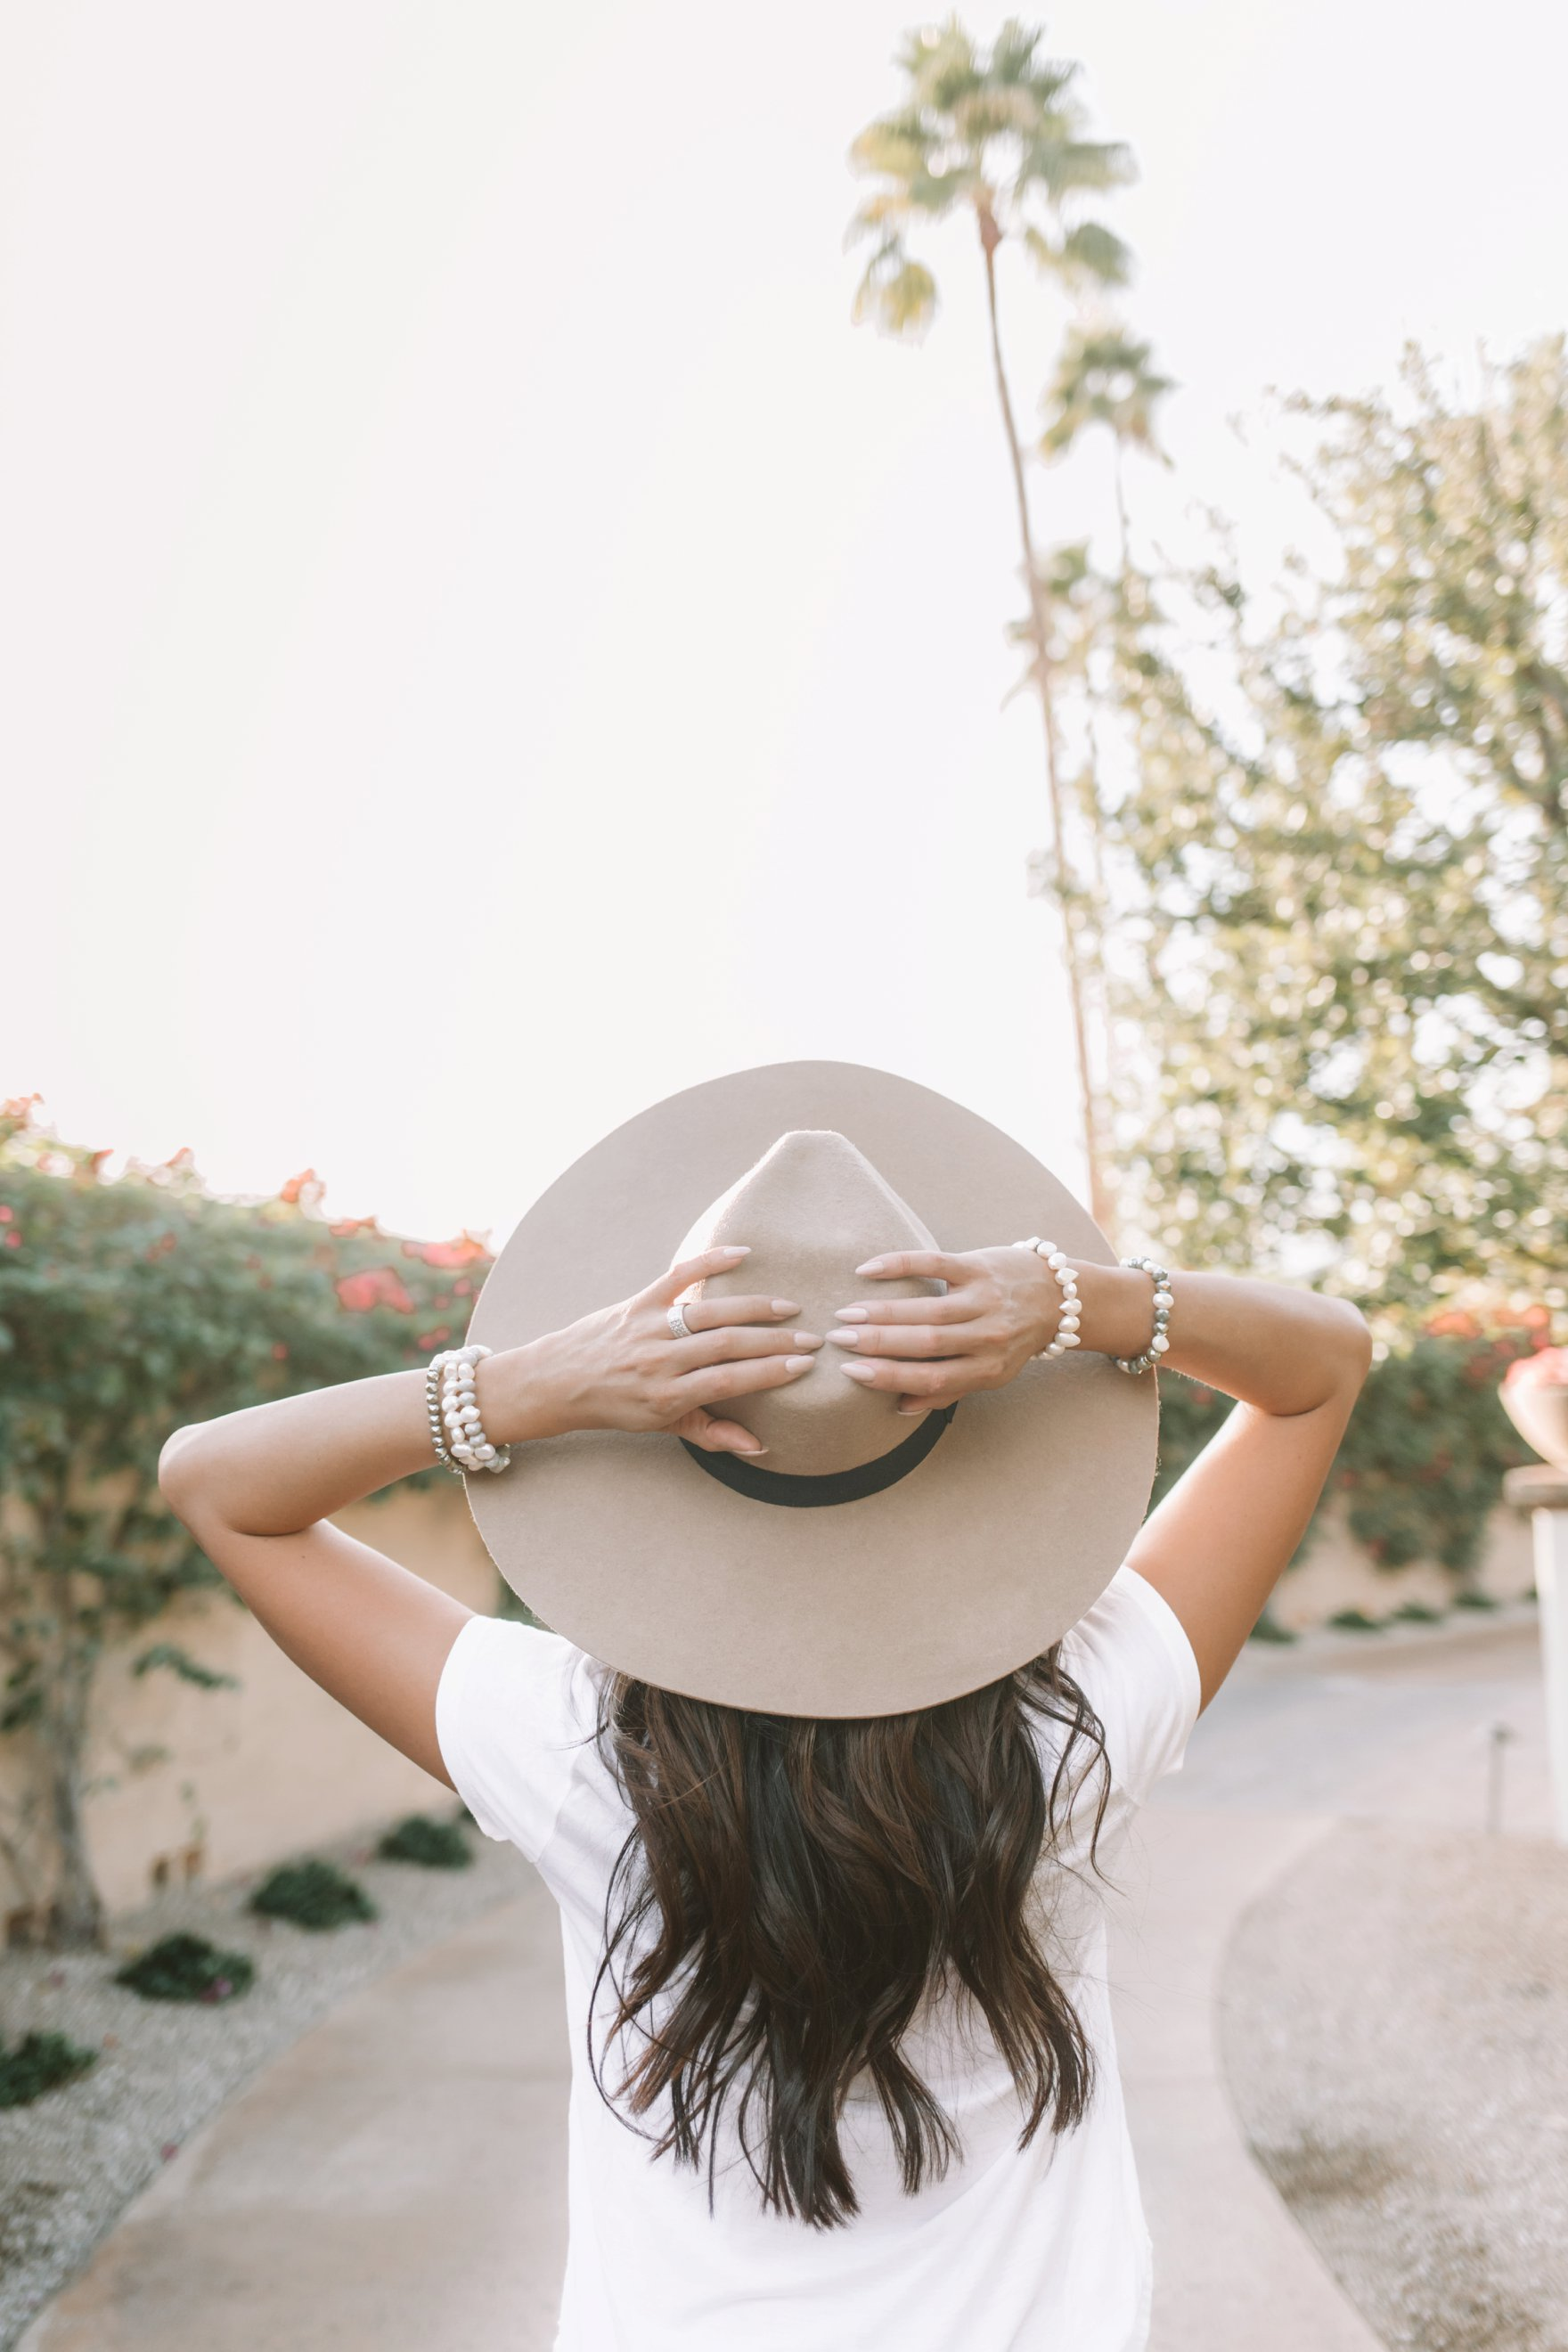 big felt hat with basic tee shirt and pearl necklaces. lifestyle style blogger Diana Elizabeth placing hands on back of hat